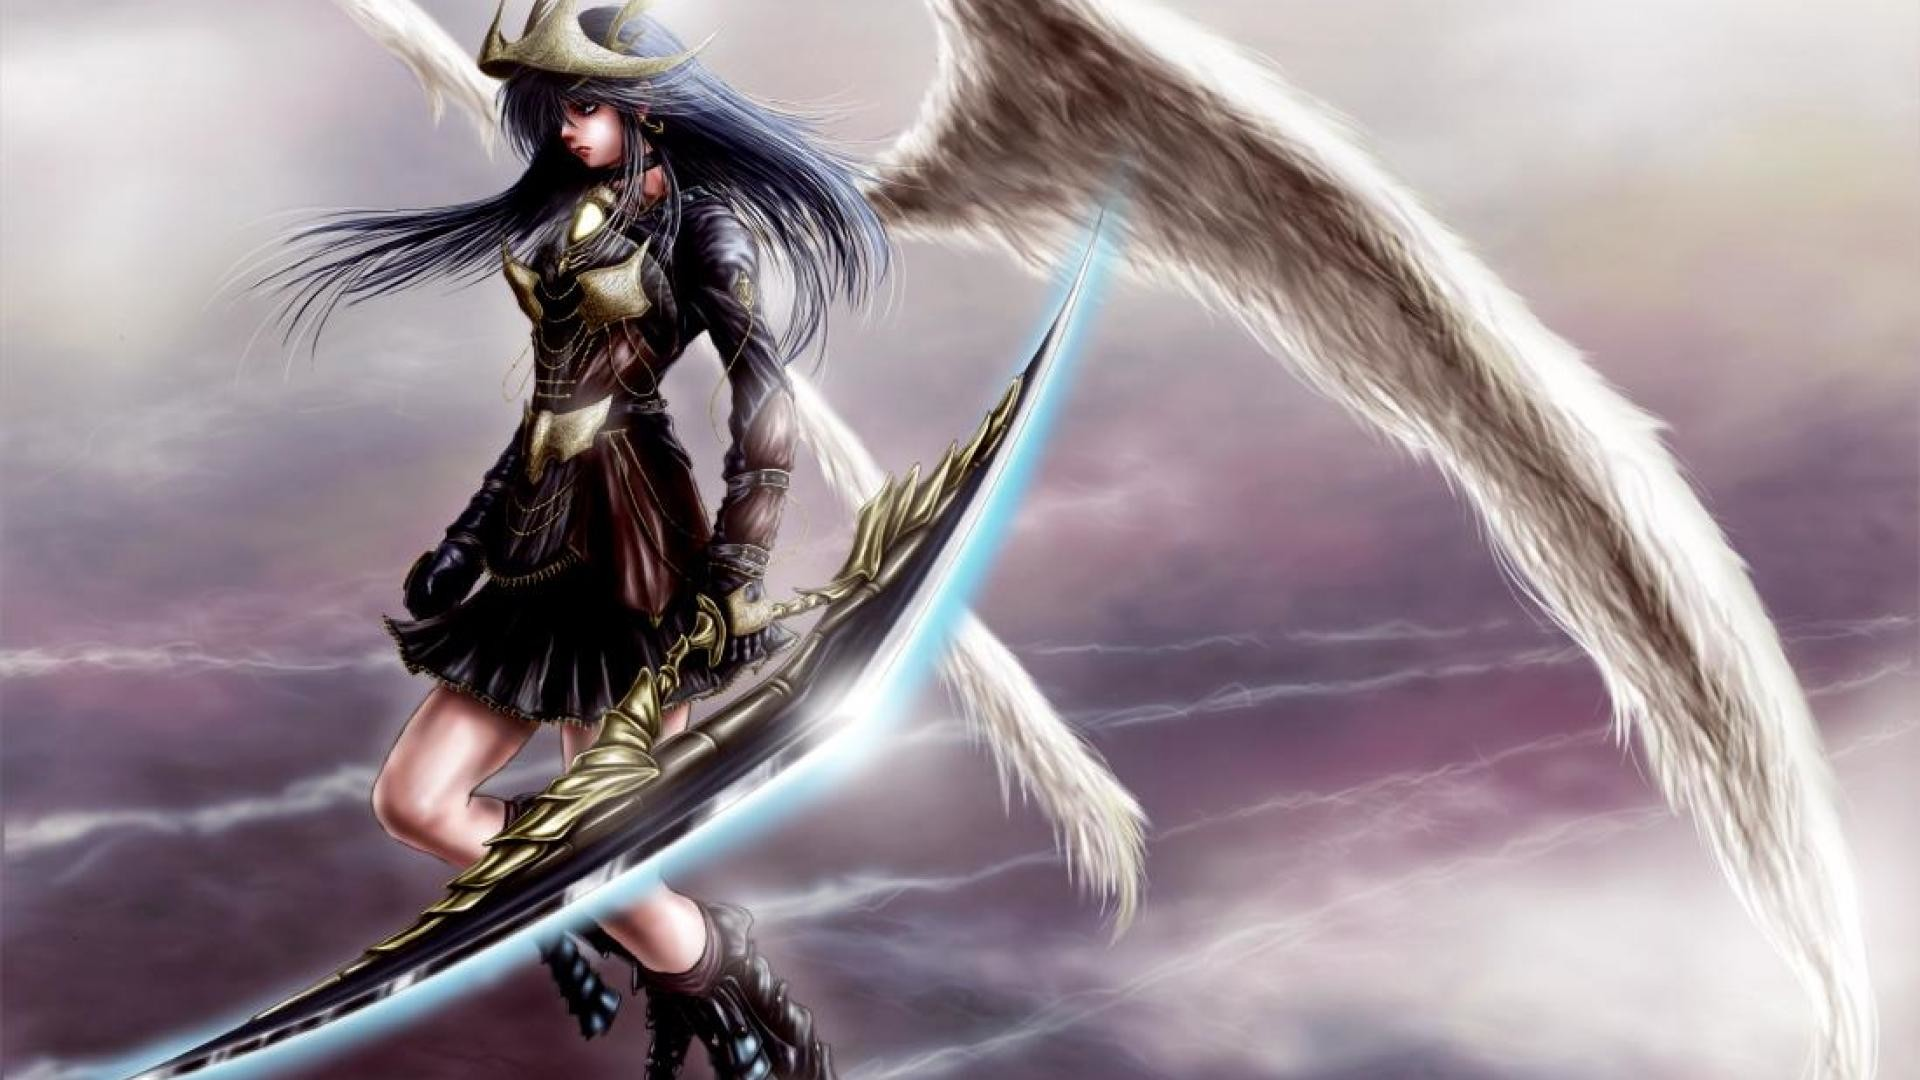 1920x1080 ... 1000 images about angels on Wallpaper Gallery | The energy, Angel and  The ...